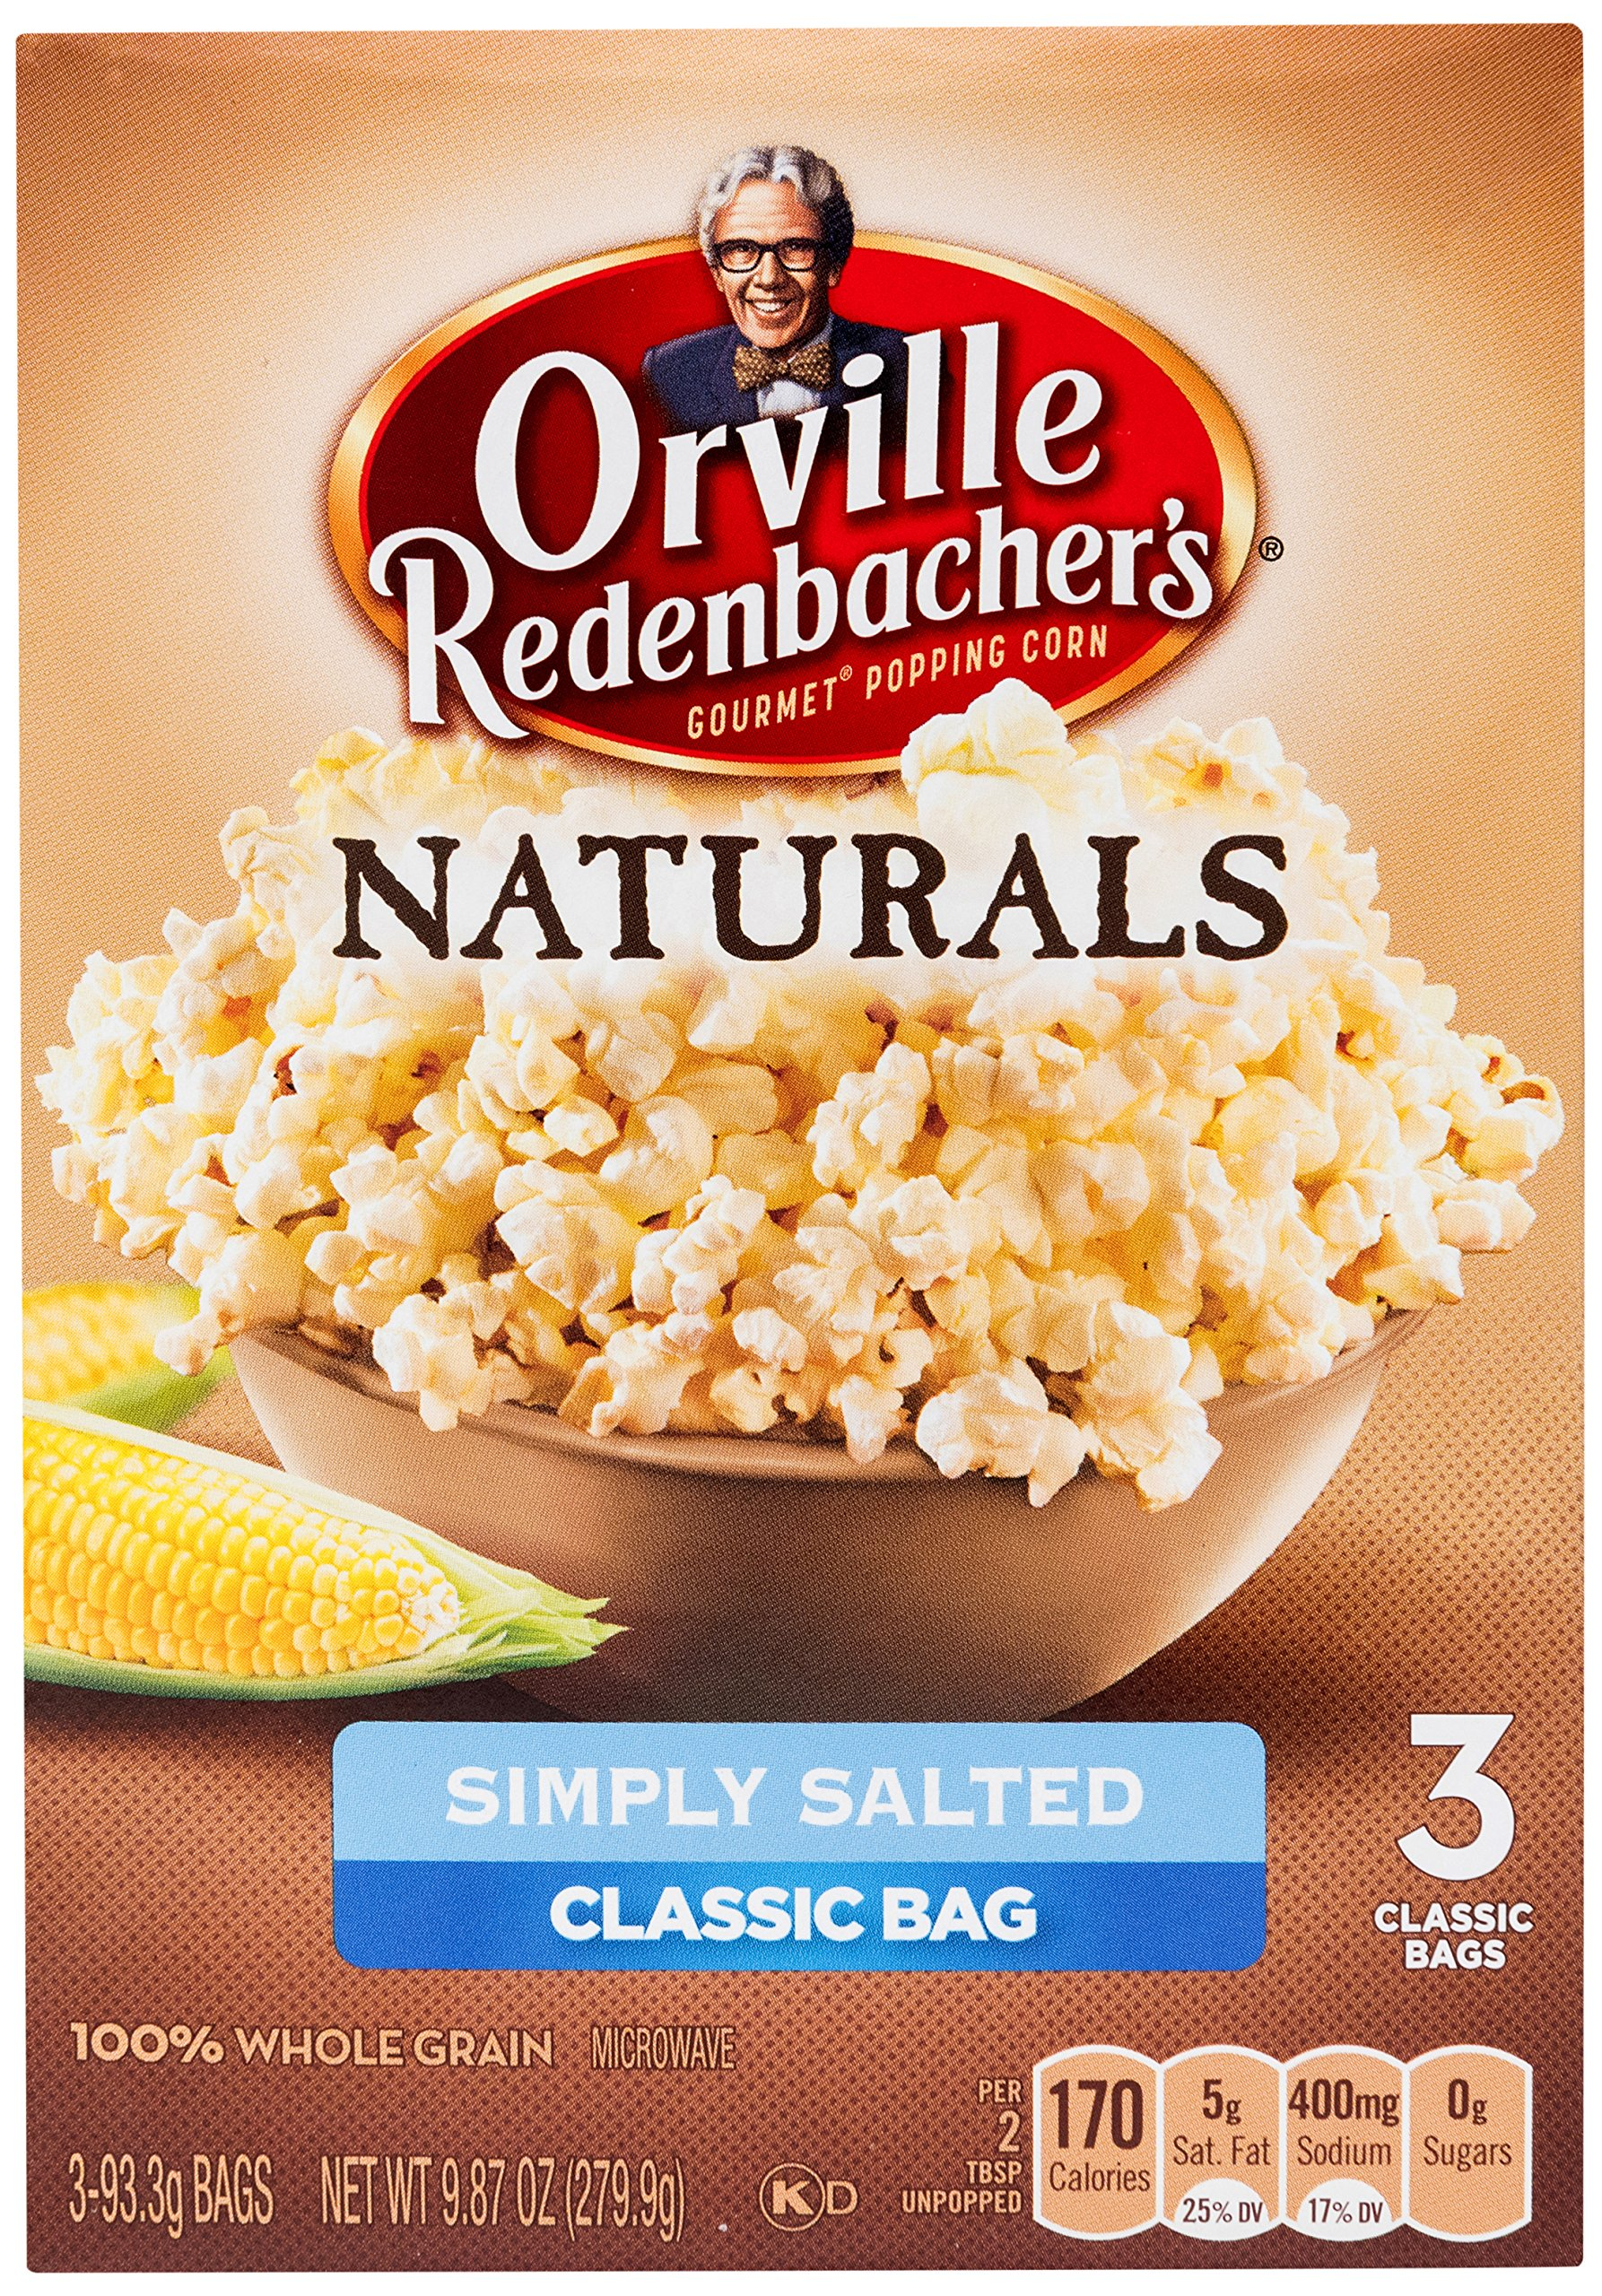 Orville Redenbacher's Naturals Simply Salted Popcorn, 3.29 Ounce Classic Bag, 3-Count by Orville Redenbacher's